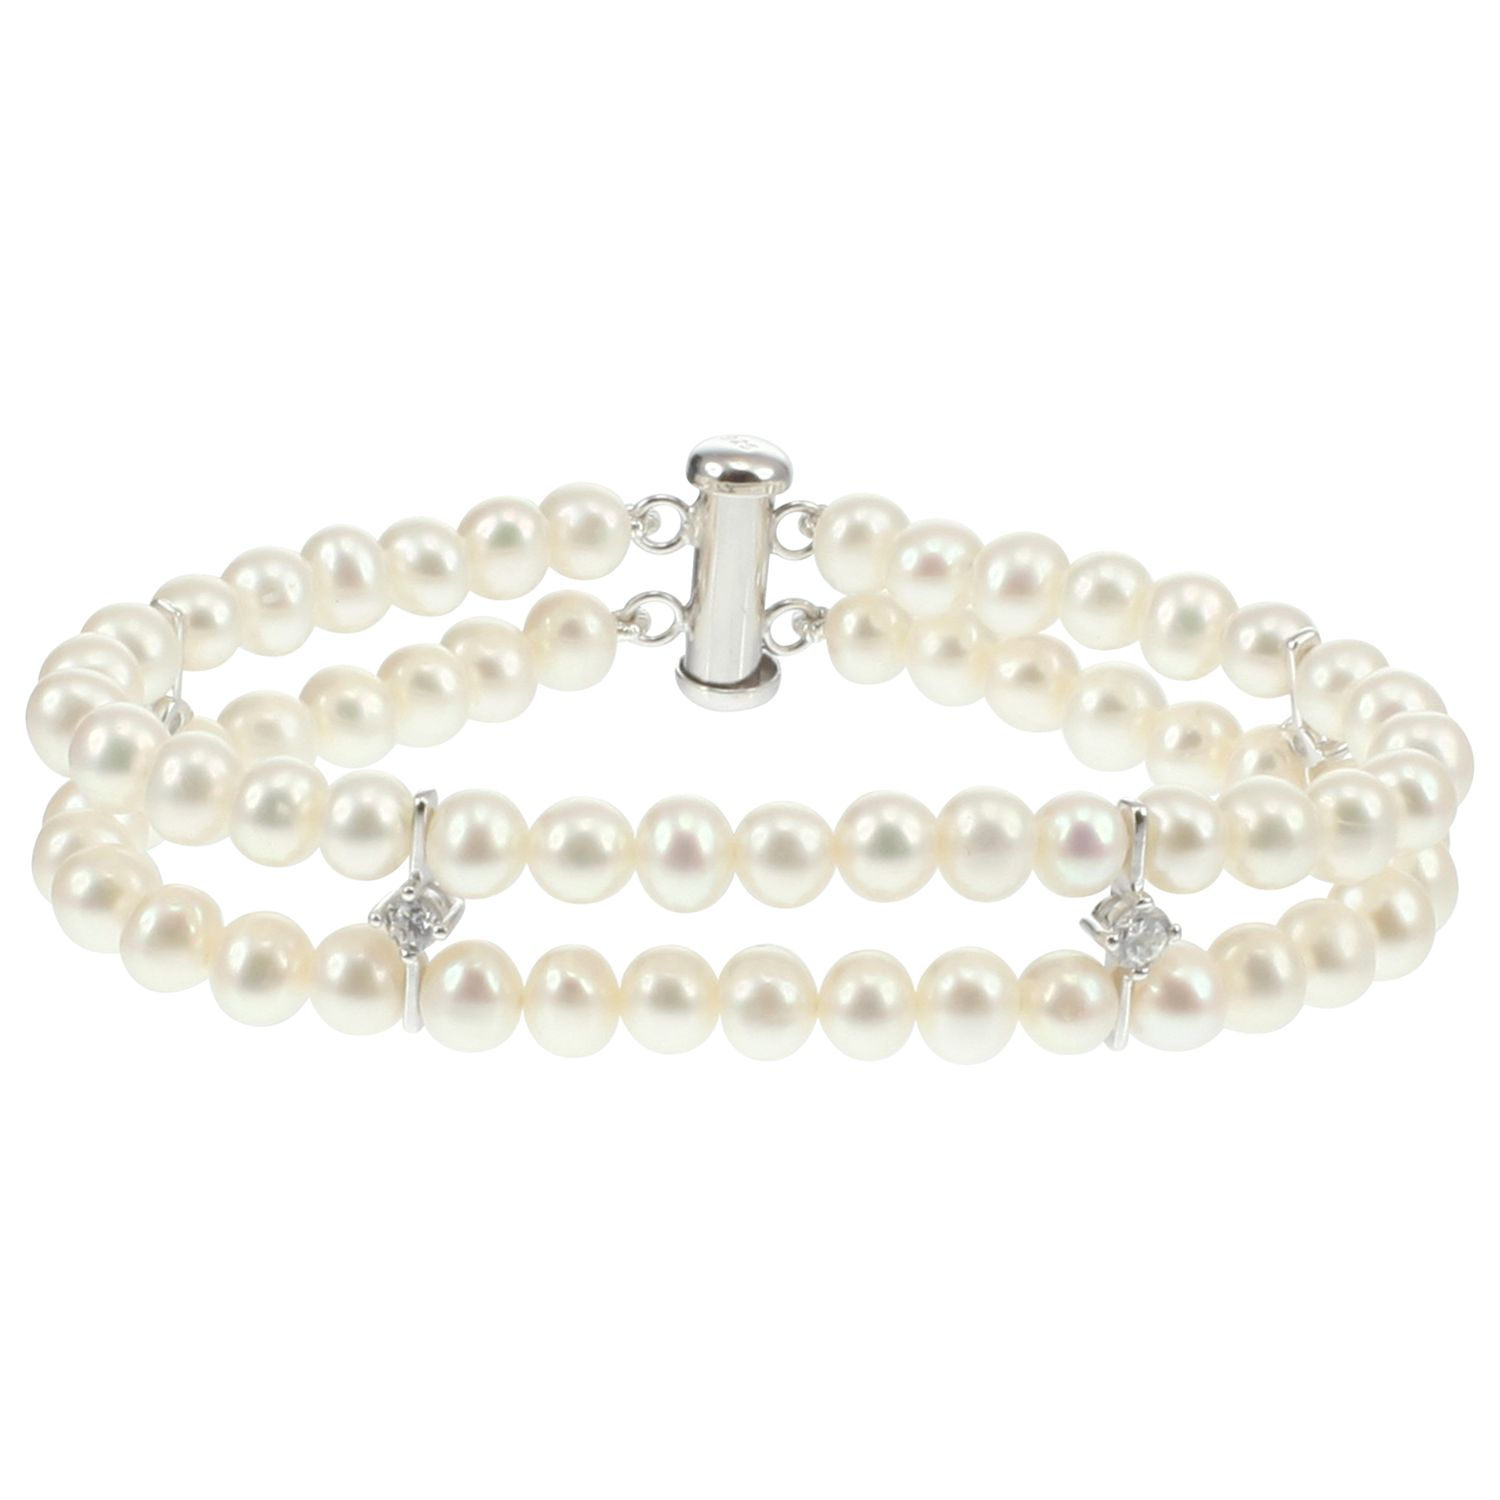 Lido Pearls Lido Pearls Freshwater Pearl Cubic Zirconia Detail Double Row Bracelet, White